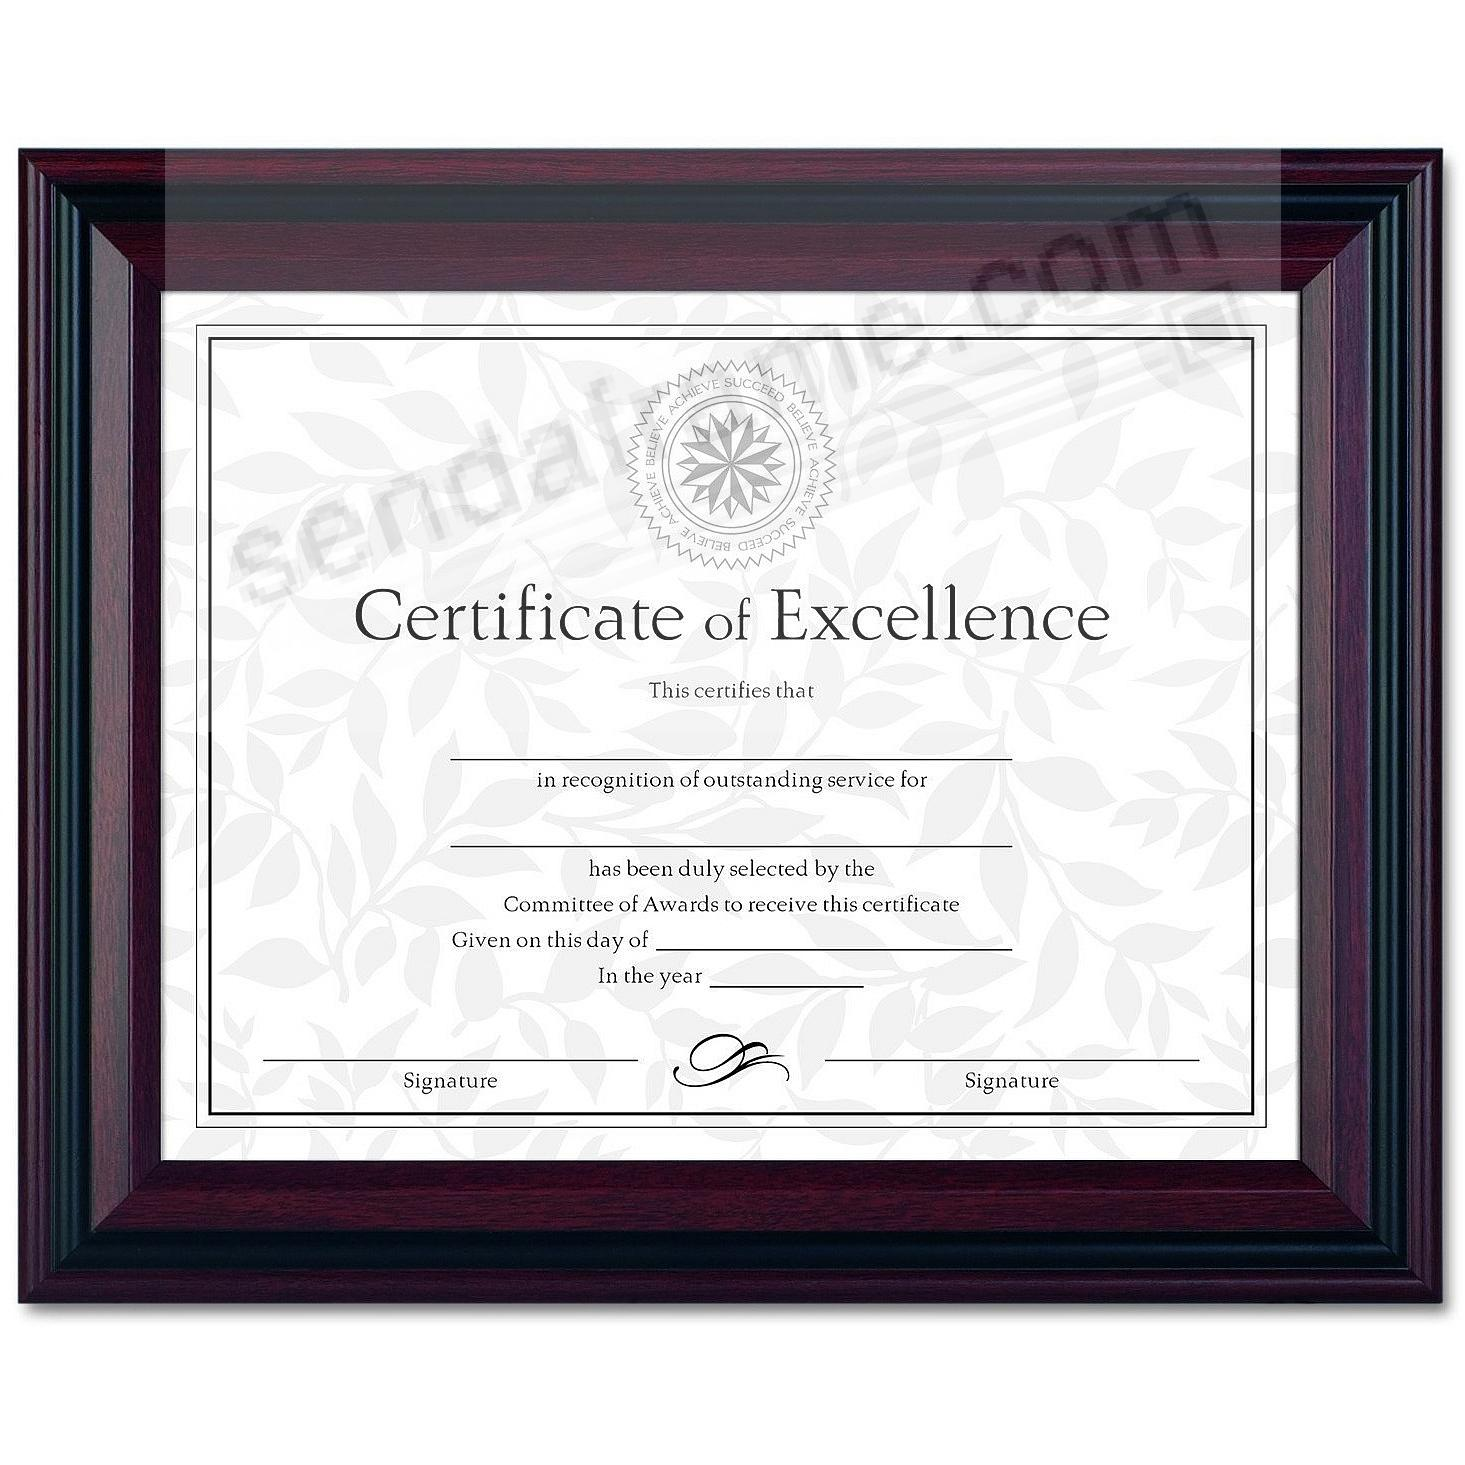 Rosewood/Black Certificate frame by DAX/Connoisseur®